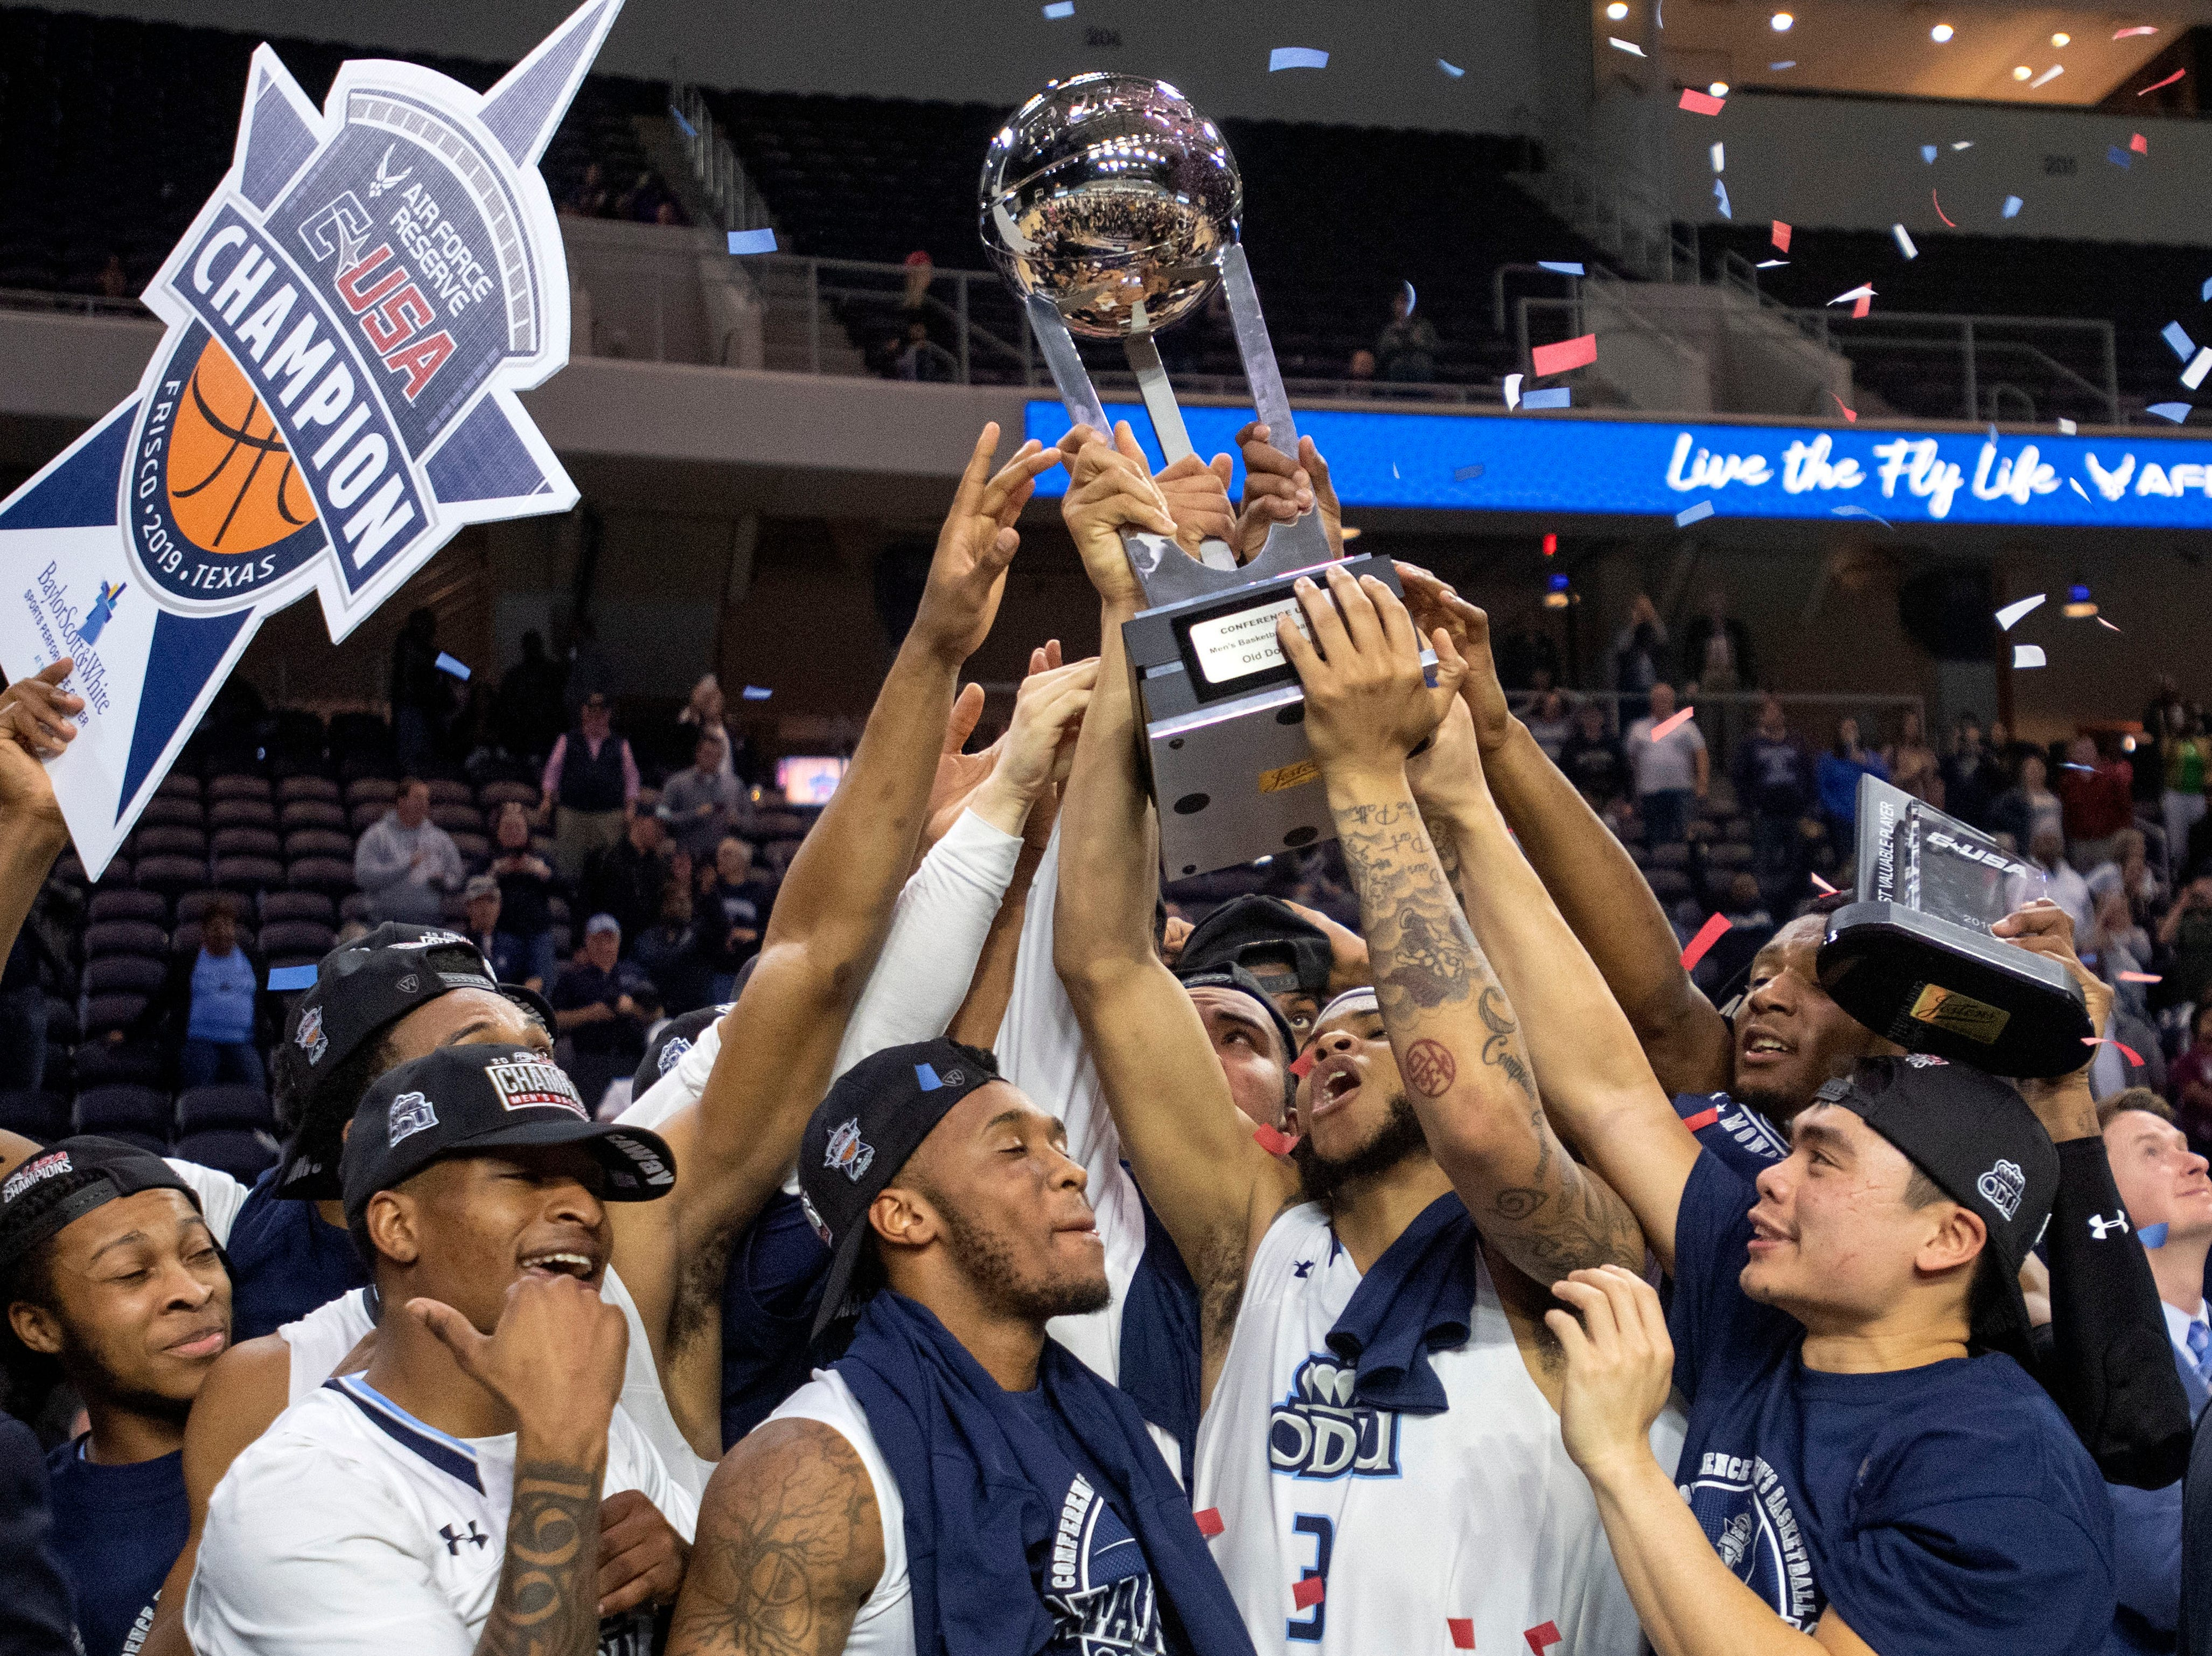 Old Dominion (26-8), No. 14 seed in South, Conference USA champion